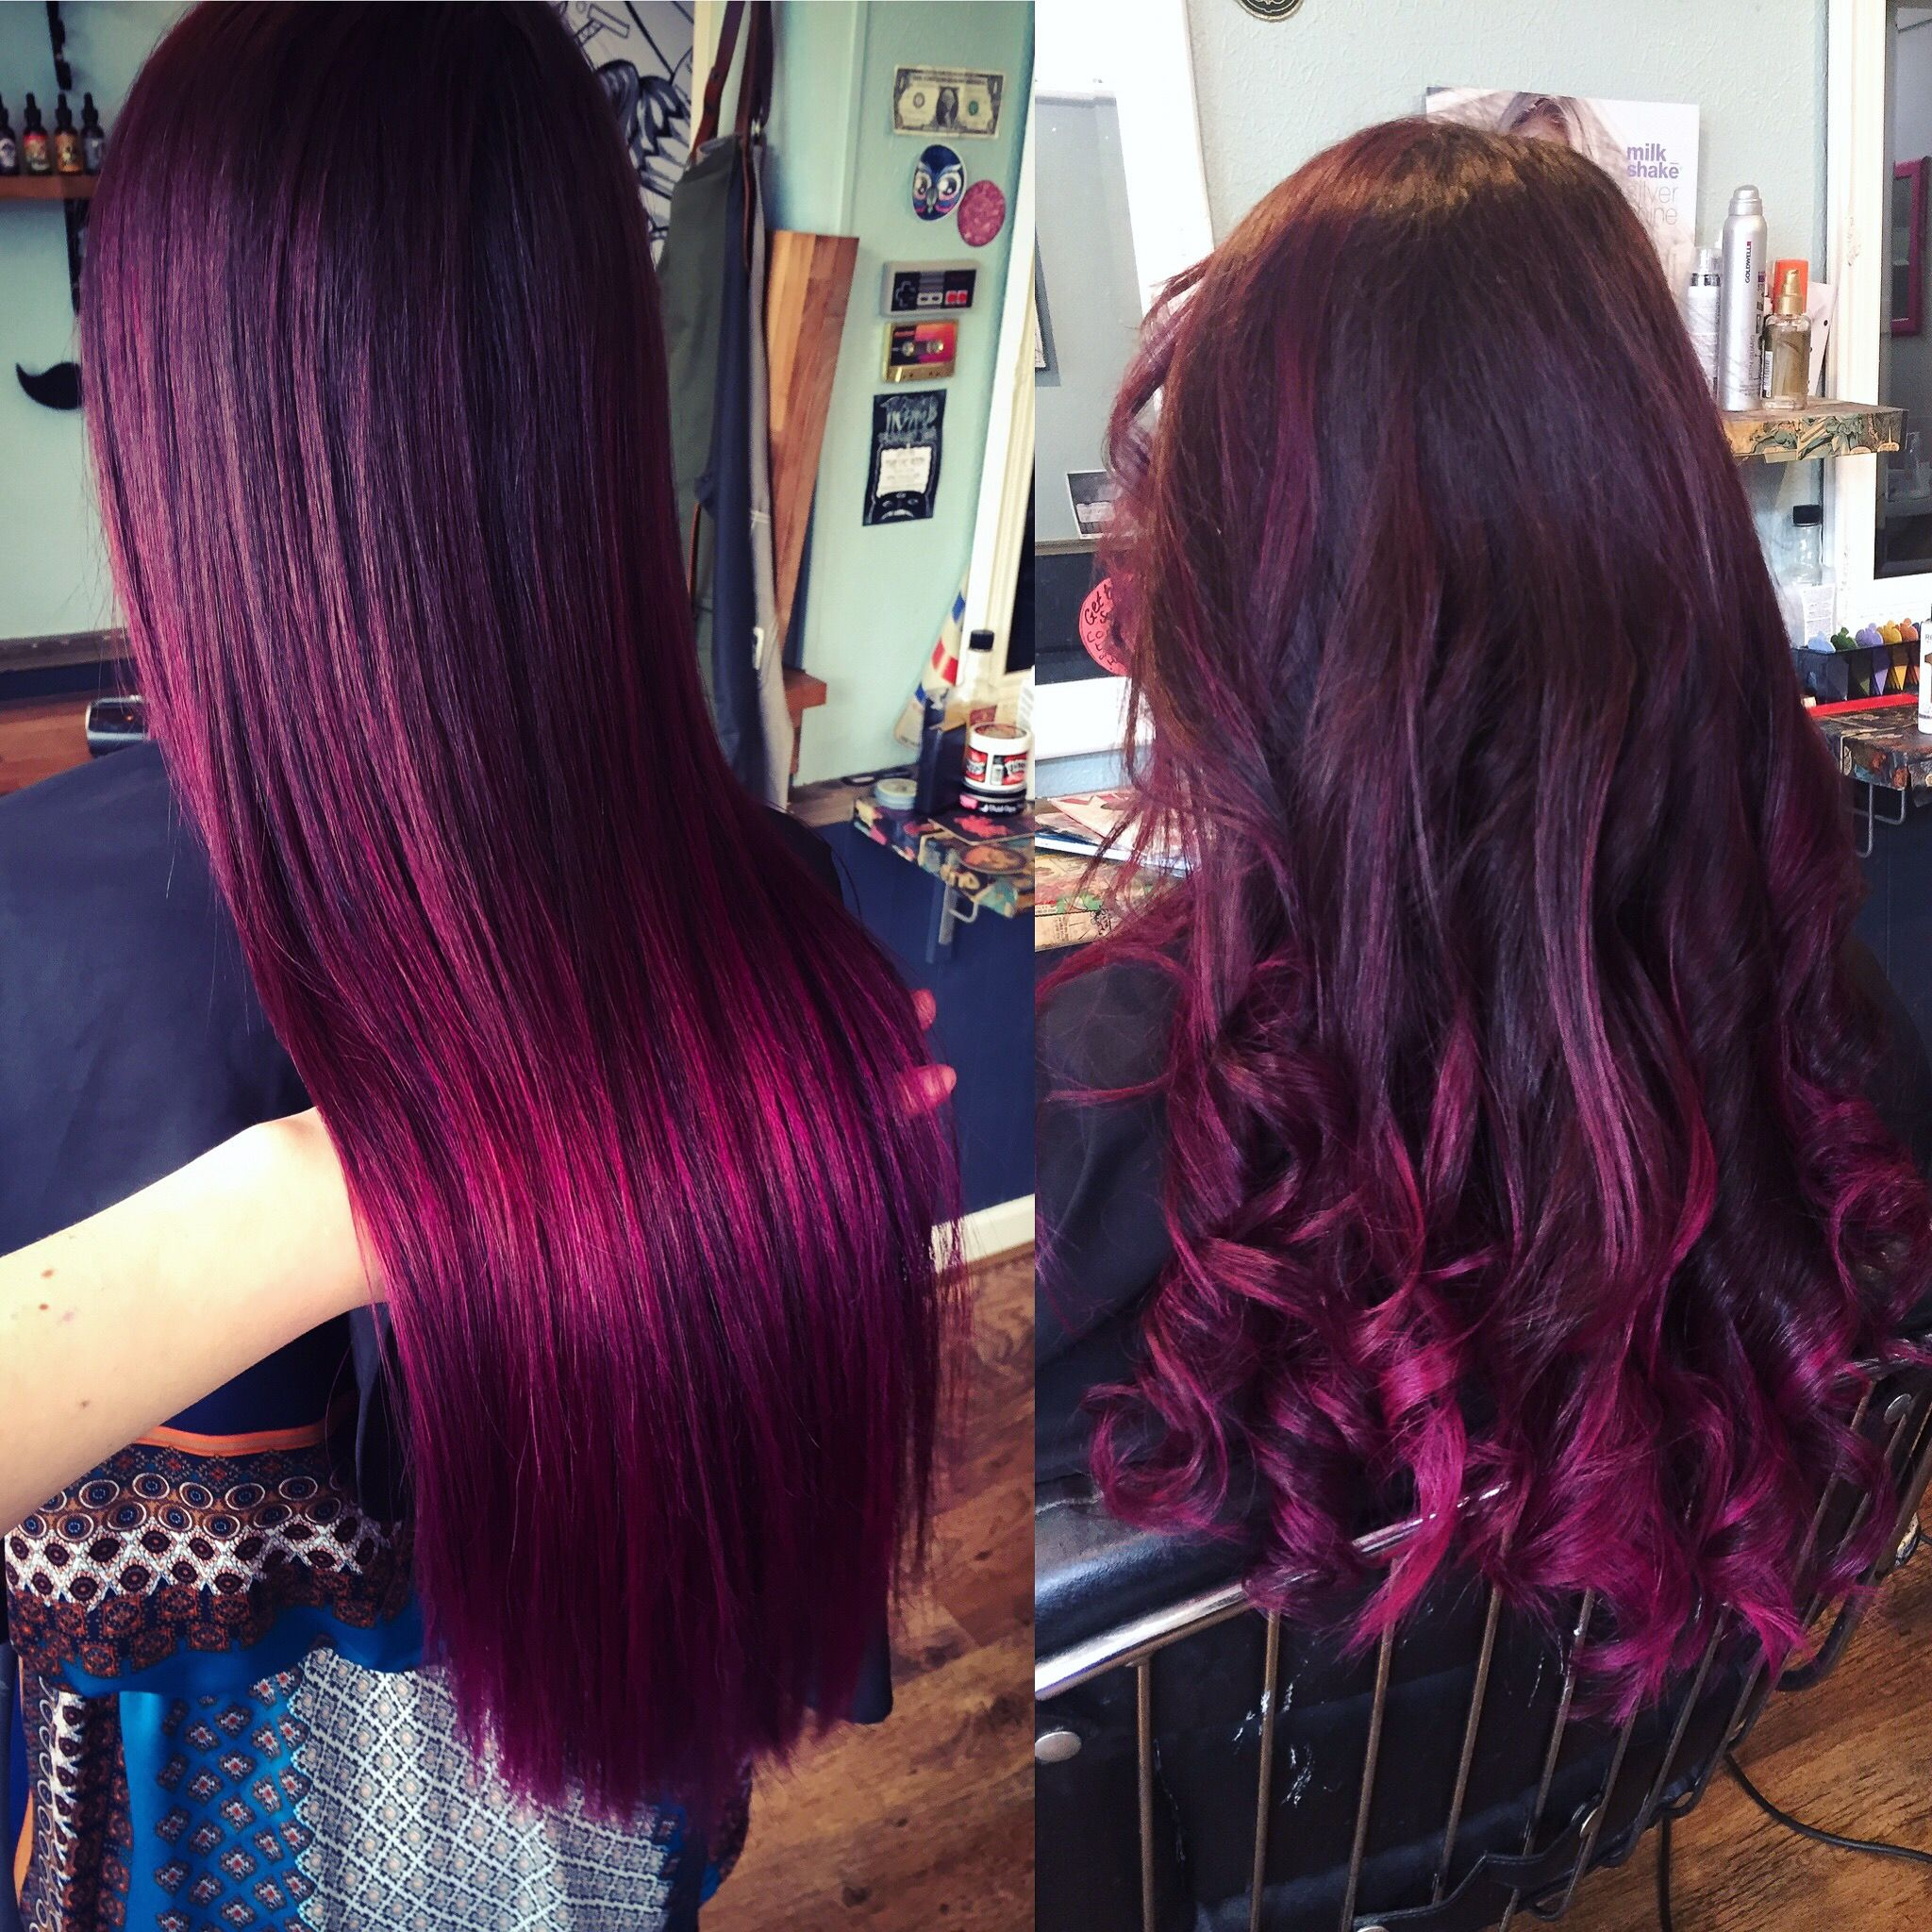 Mulberry Magenta Purple Red Balayage Ombre Brunette Hair Haircolor Steam Hair Design Newquay Salo Hair Color Techniques Magenta Hair Colors Mulberry Hair Color